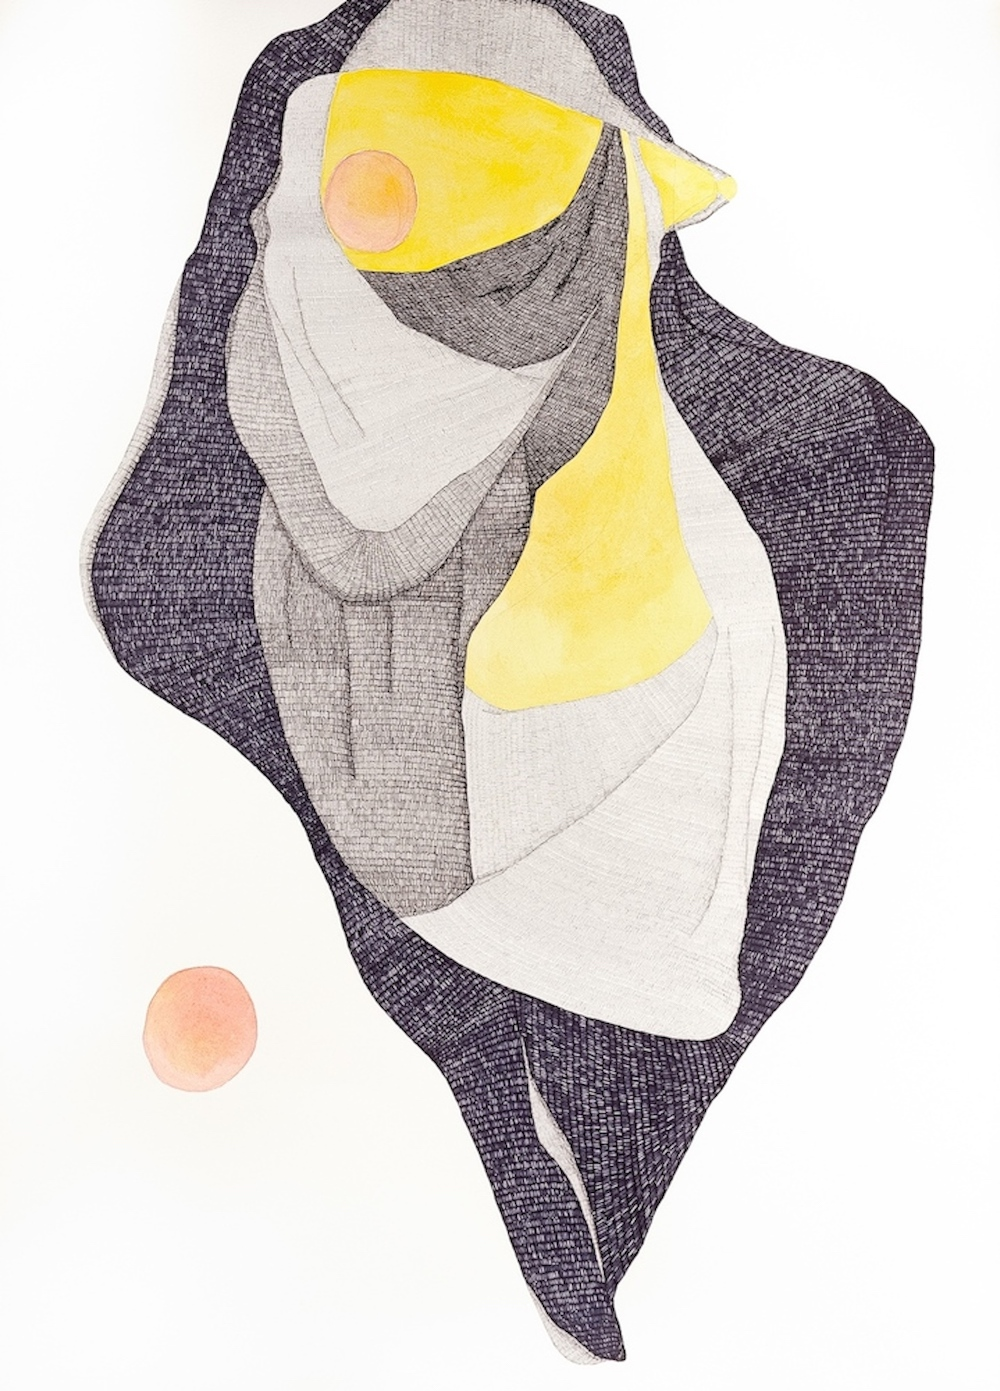 Troubador     2014   Pen, graphite, watercolour and gouache on Hahnemuhle paper  108 x 79 cm